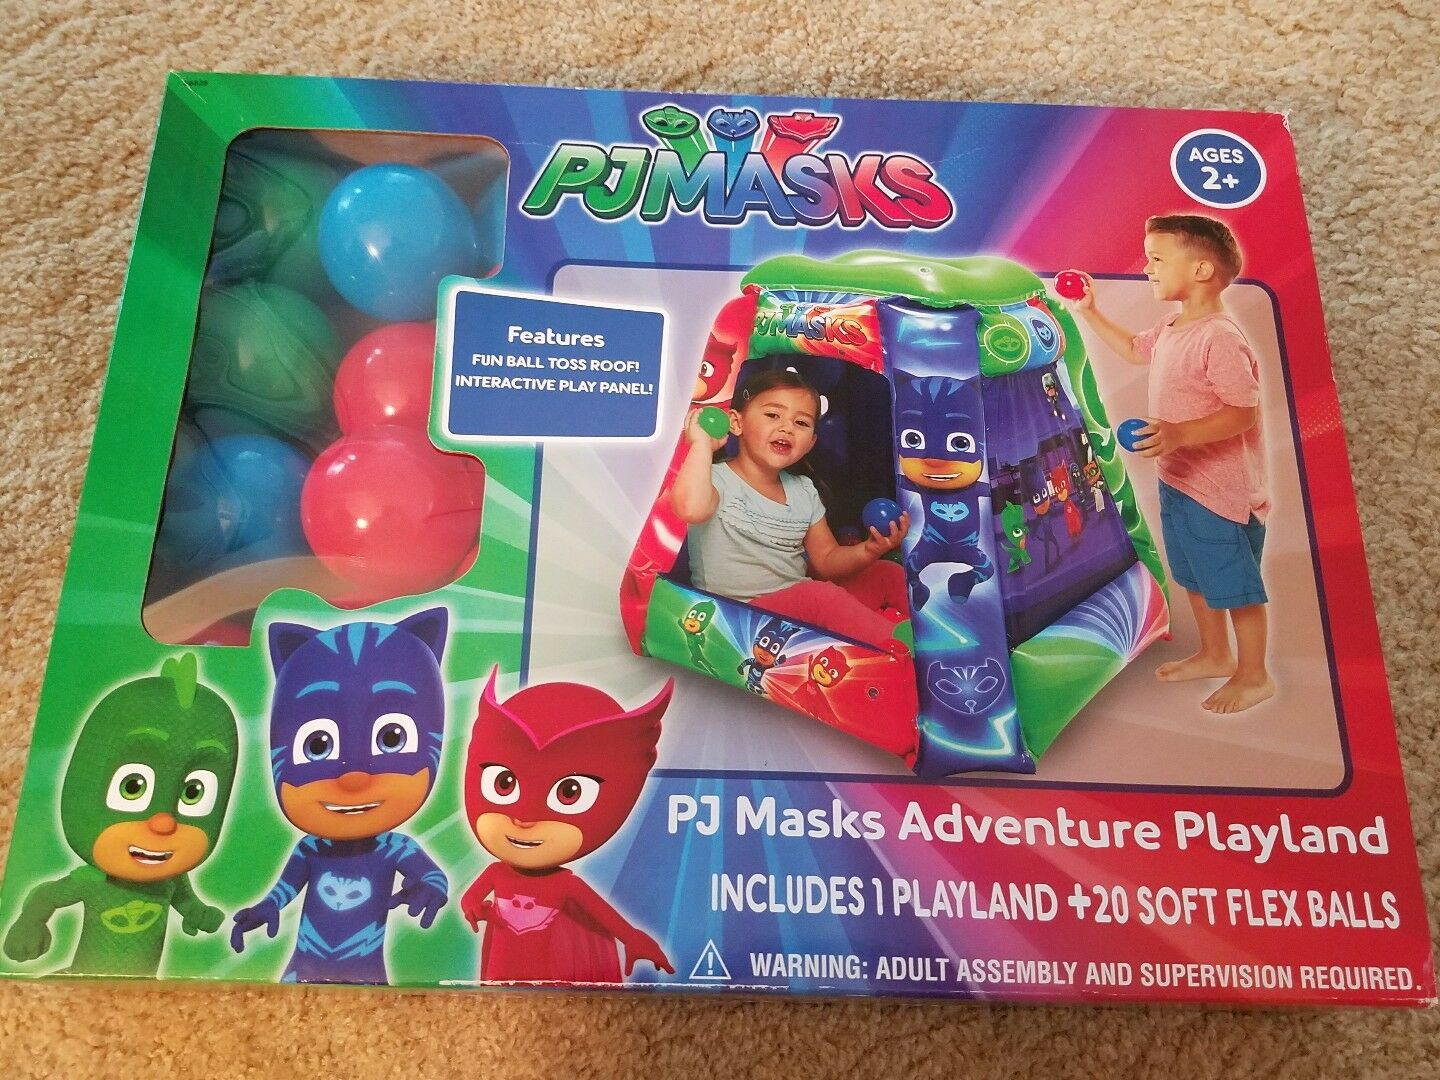 PJ Masks Adventure Adventure Adventure PlayLand Set w 20 Balls,Ball Toss Roof,Interactive Play Panel 3179db